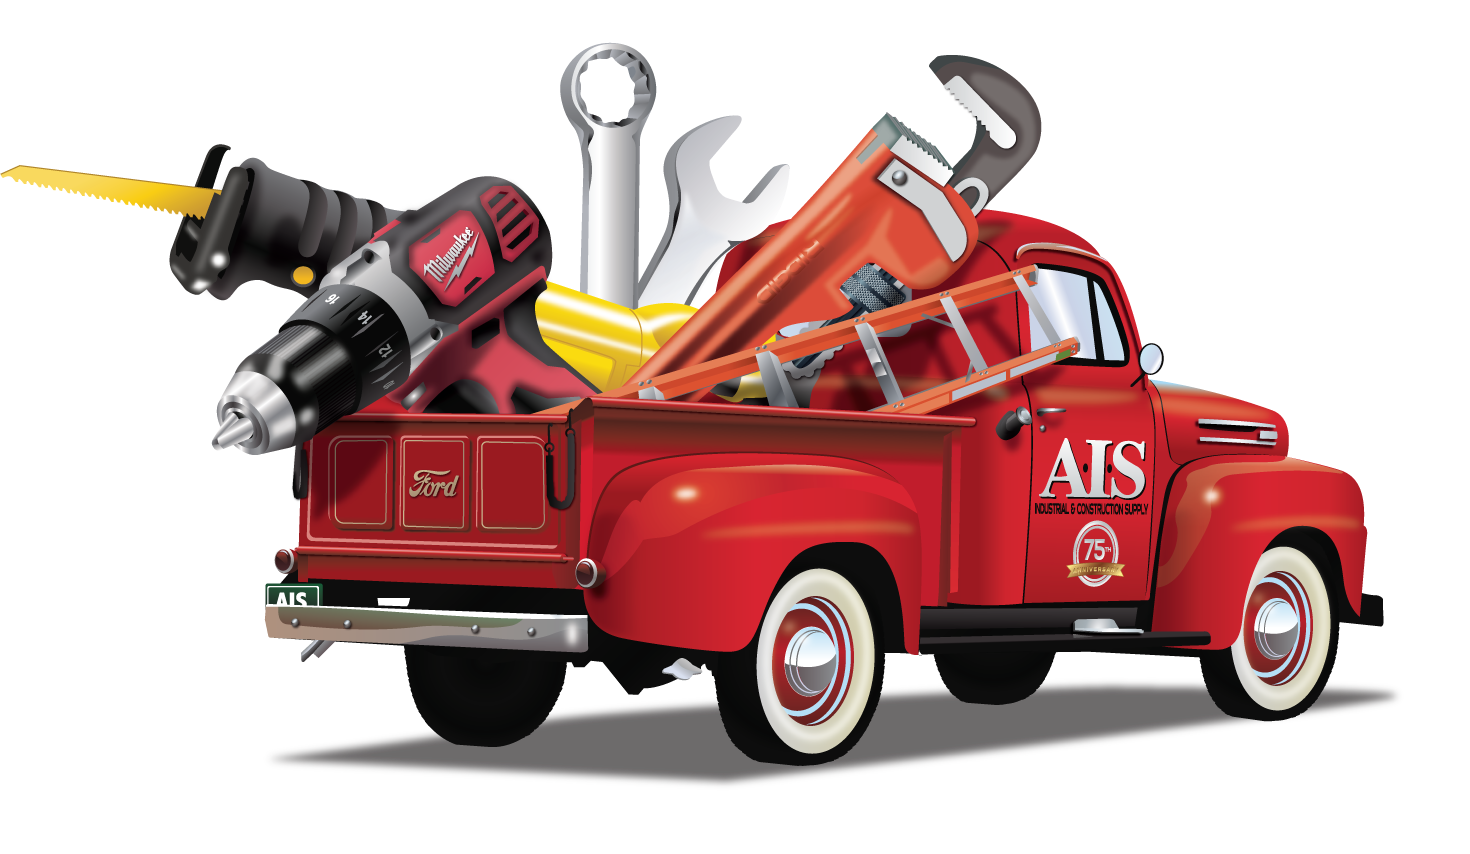 AIS Hand Tools | Power Tools | Construction & Industrial Supply